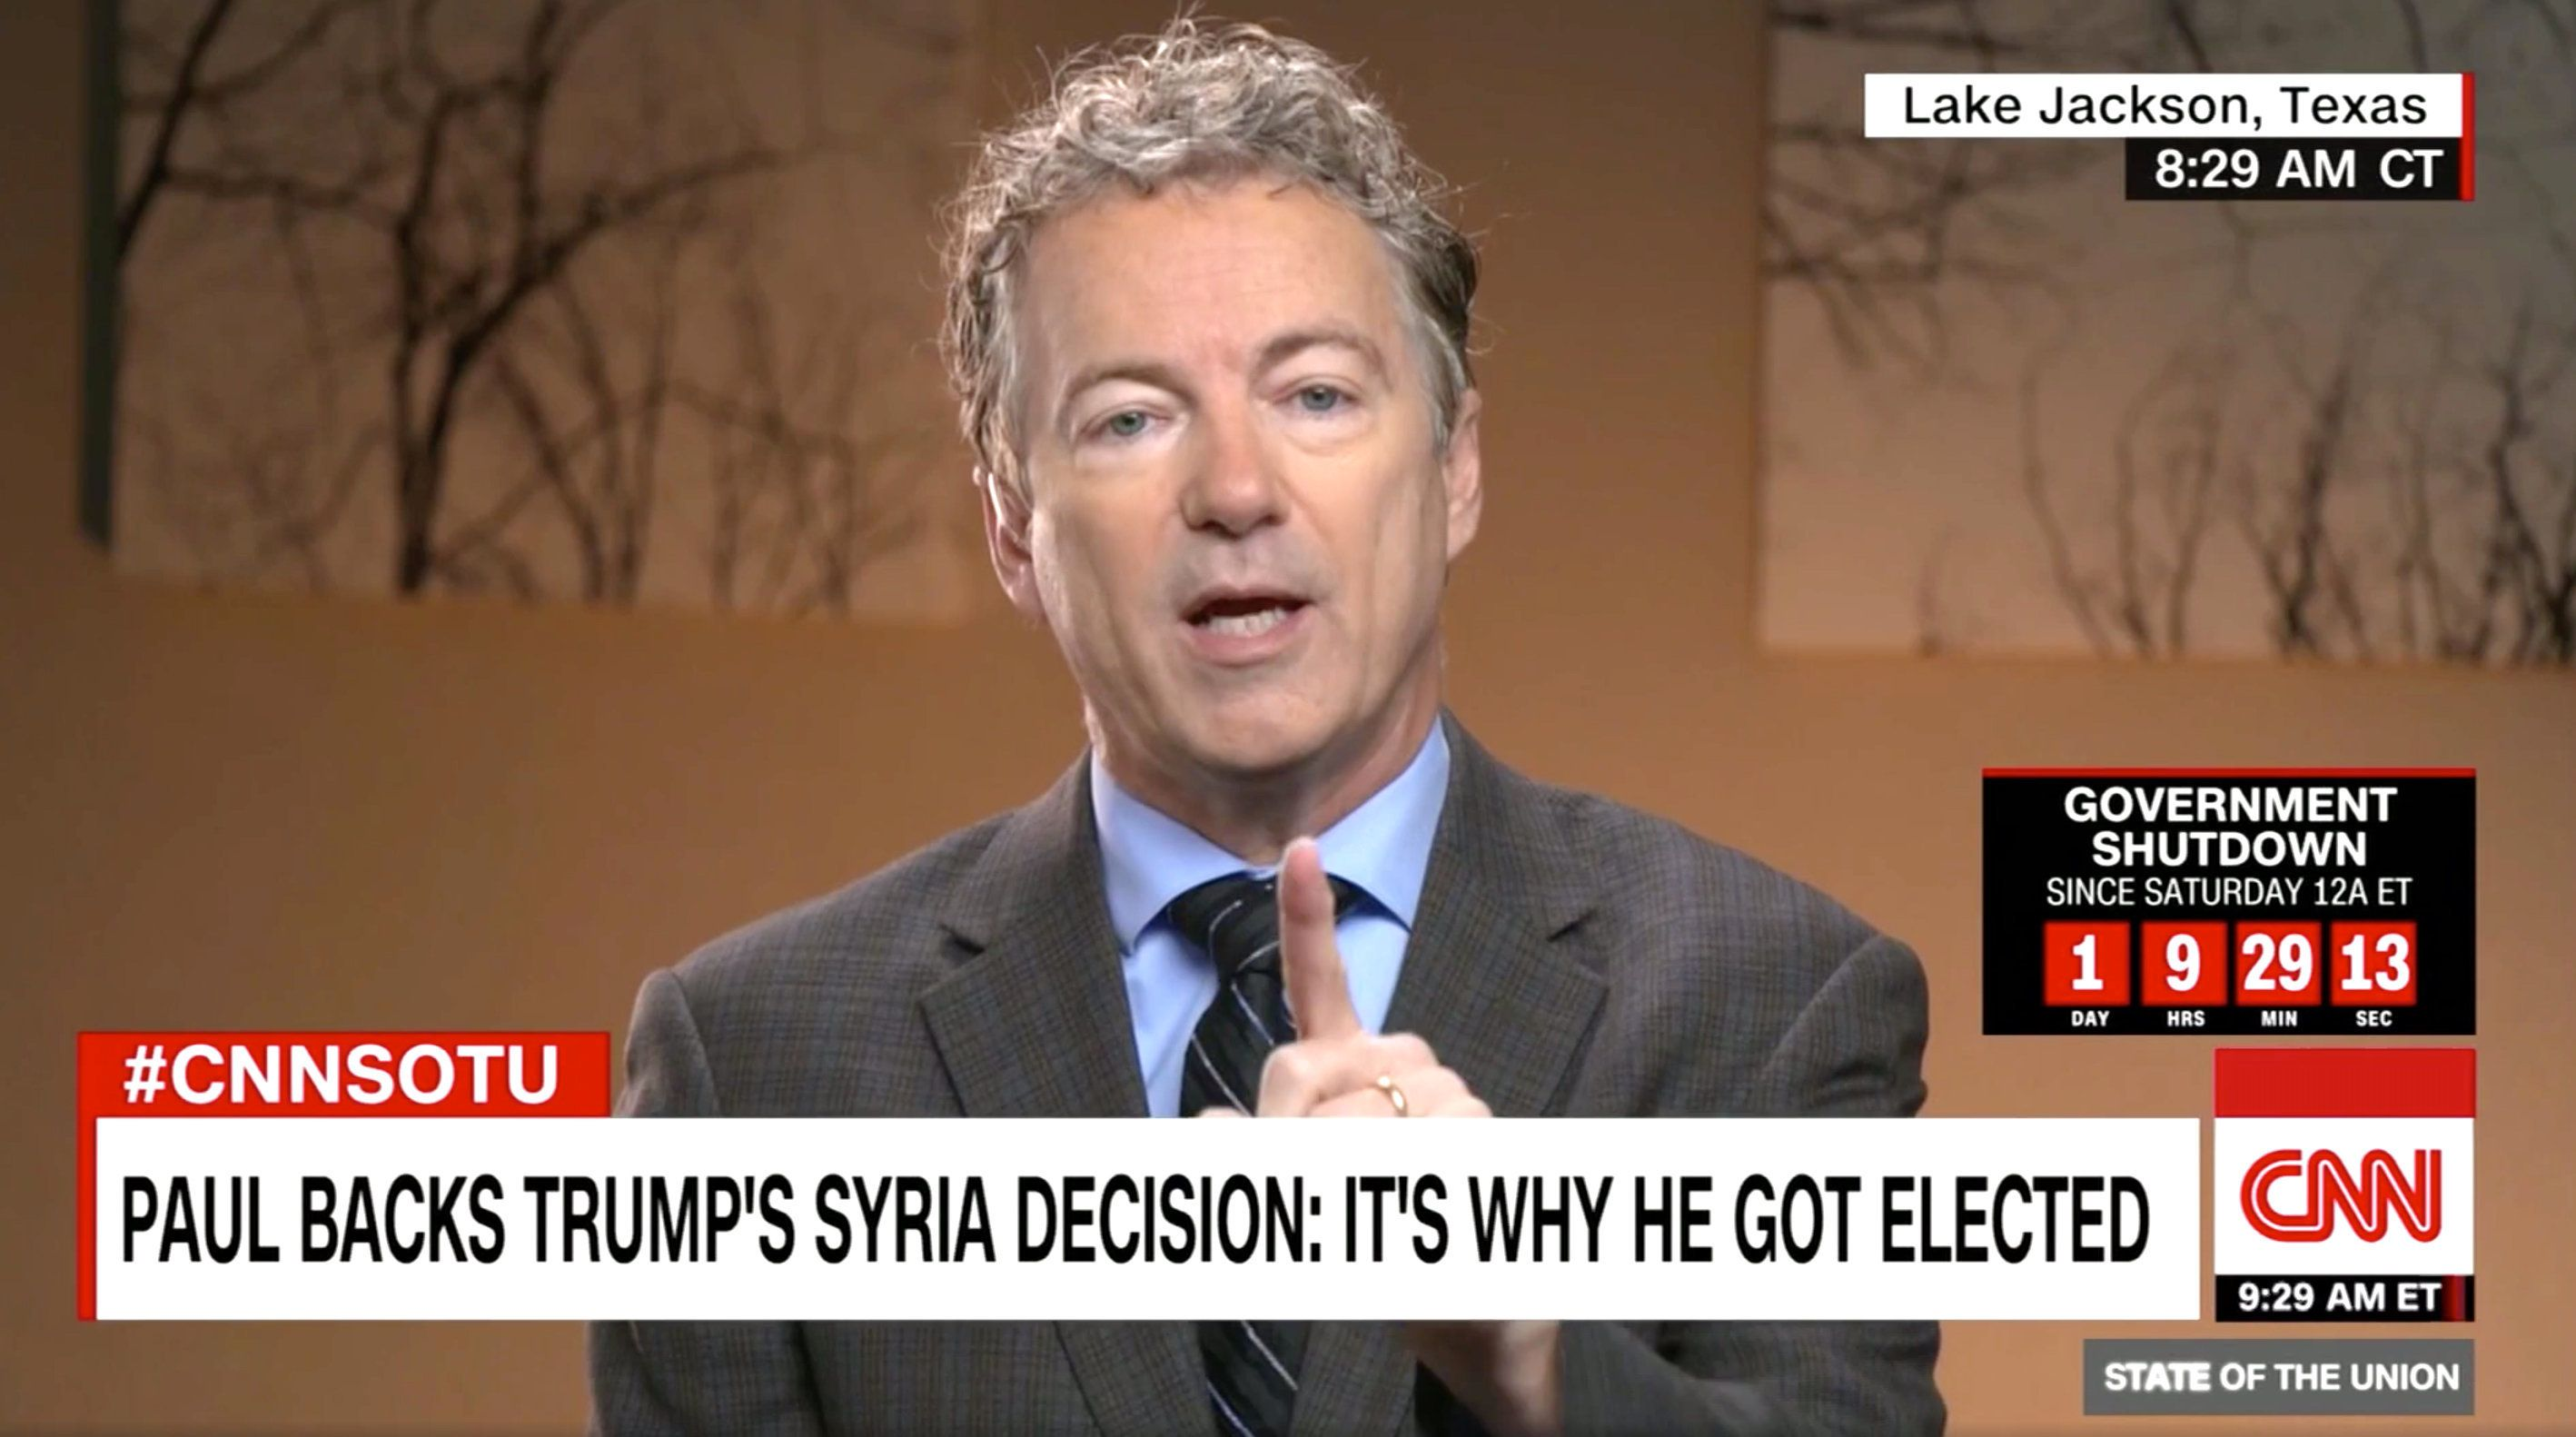 Rand Paul praised President Trump's Syria pullout, suggesting it's time communities on the ground fight their own battles.